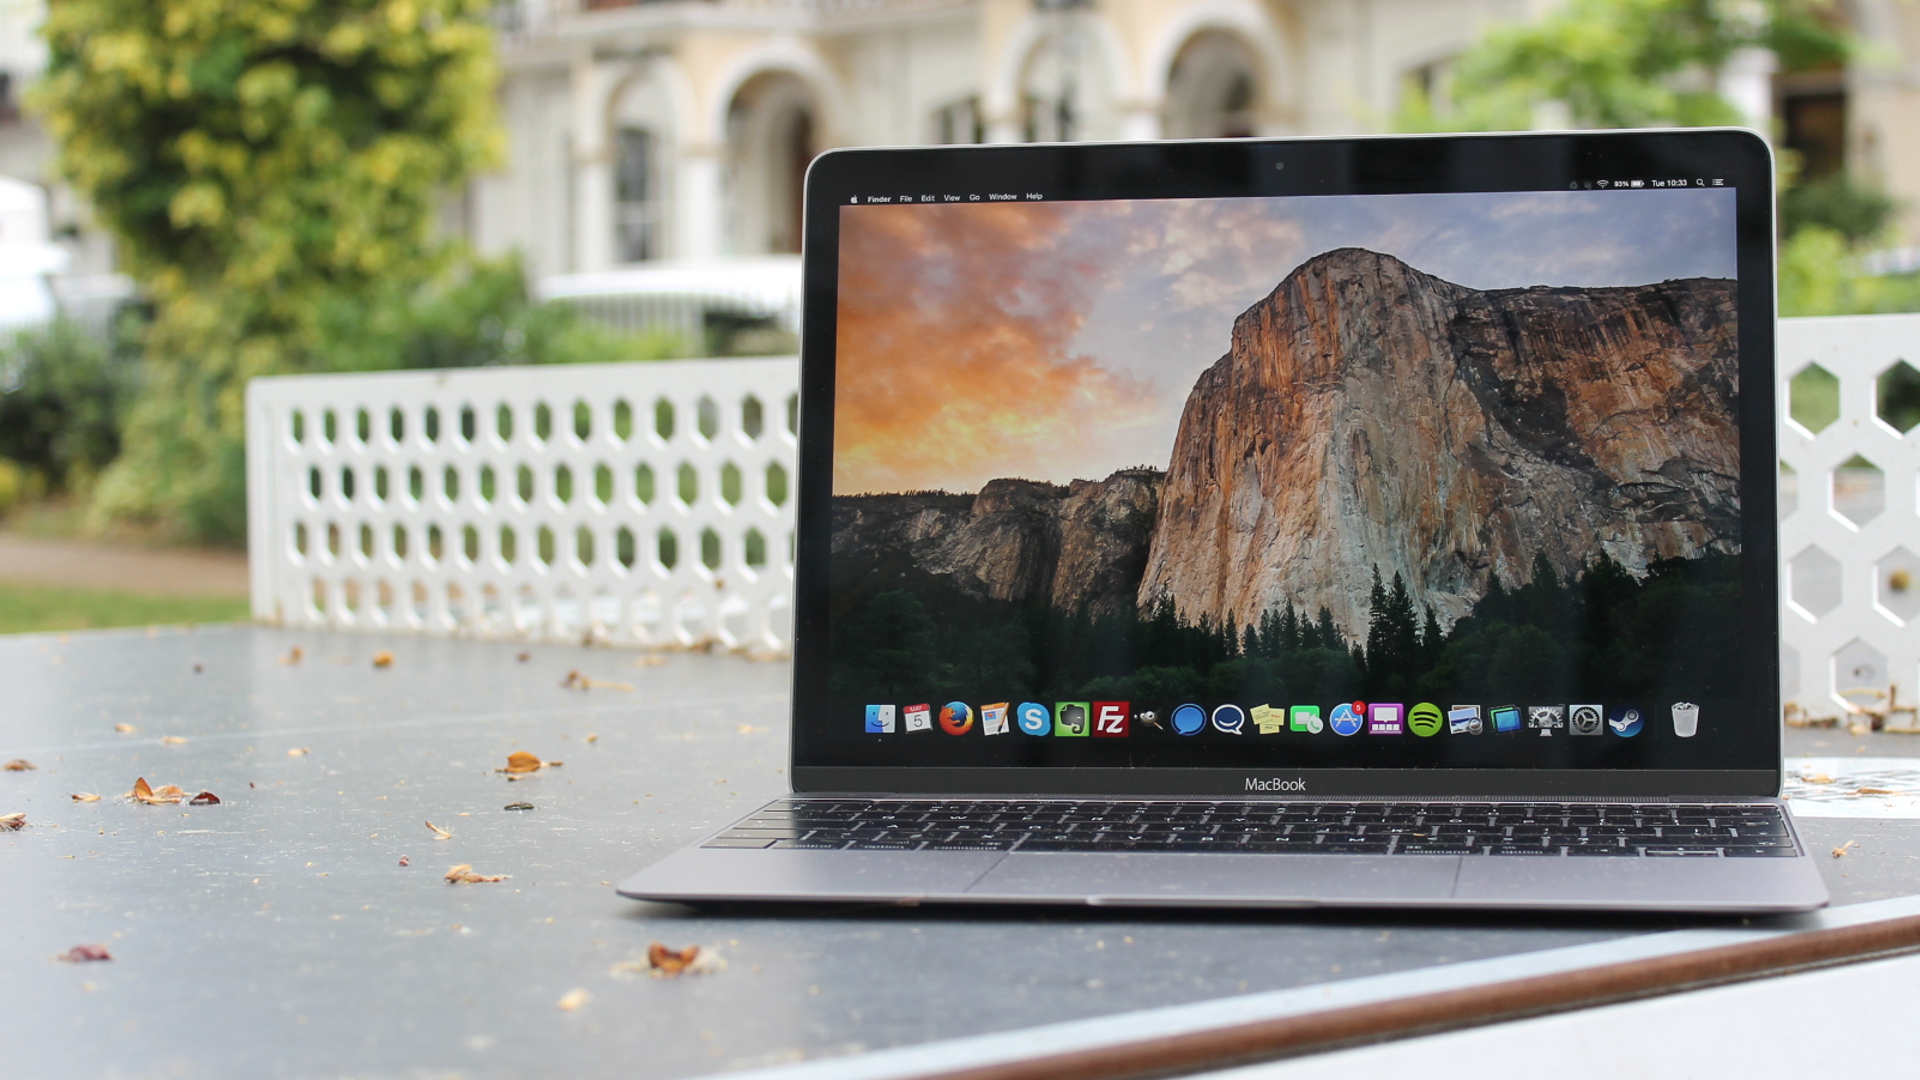 AX9j6R4qmRS7ru65DkZMvF - MacBook 2019 release date, news and rumors